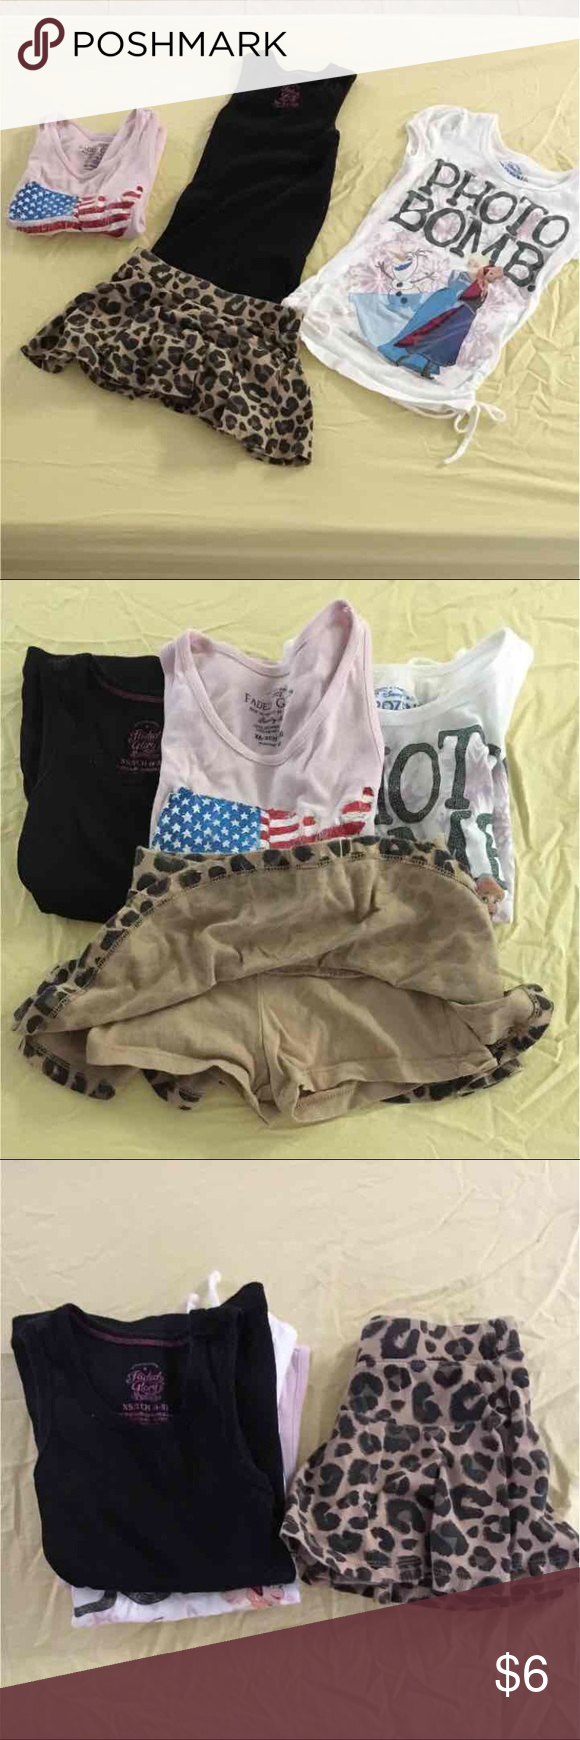 Size 4t/4s girls Size 4 girl bundle.   The leopard skirt is a size 4t All other shirts are 4s   As always from a smoke and pet free home. Matching Sets